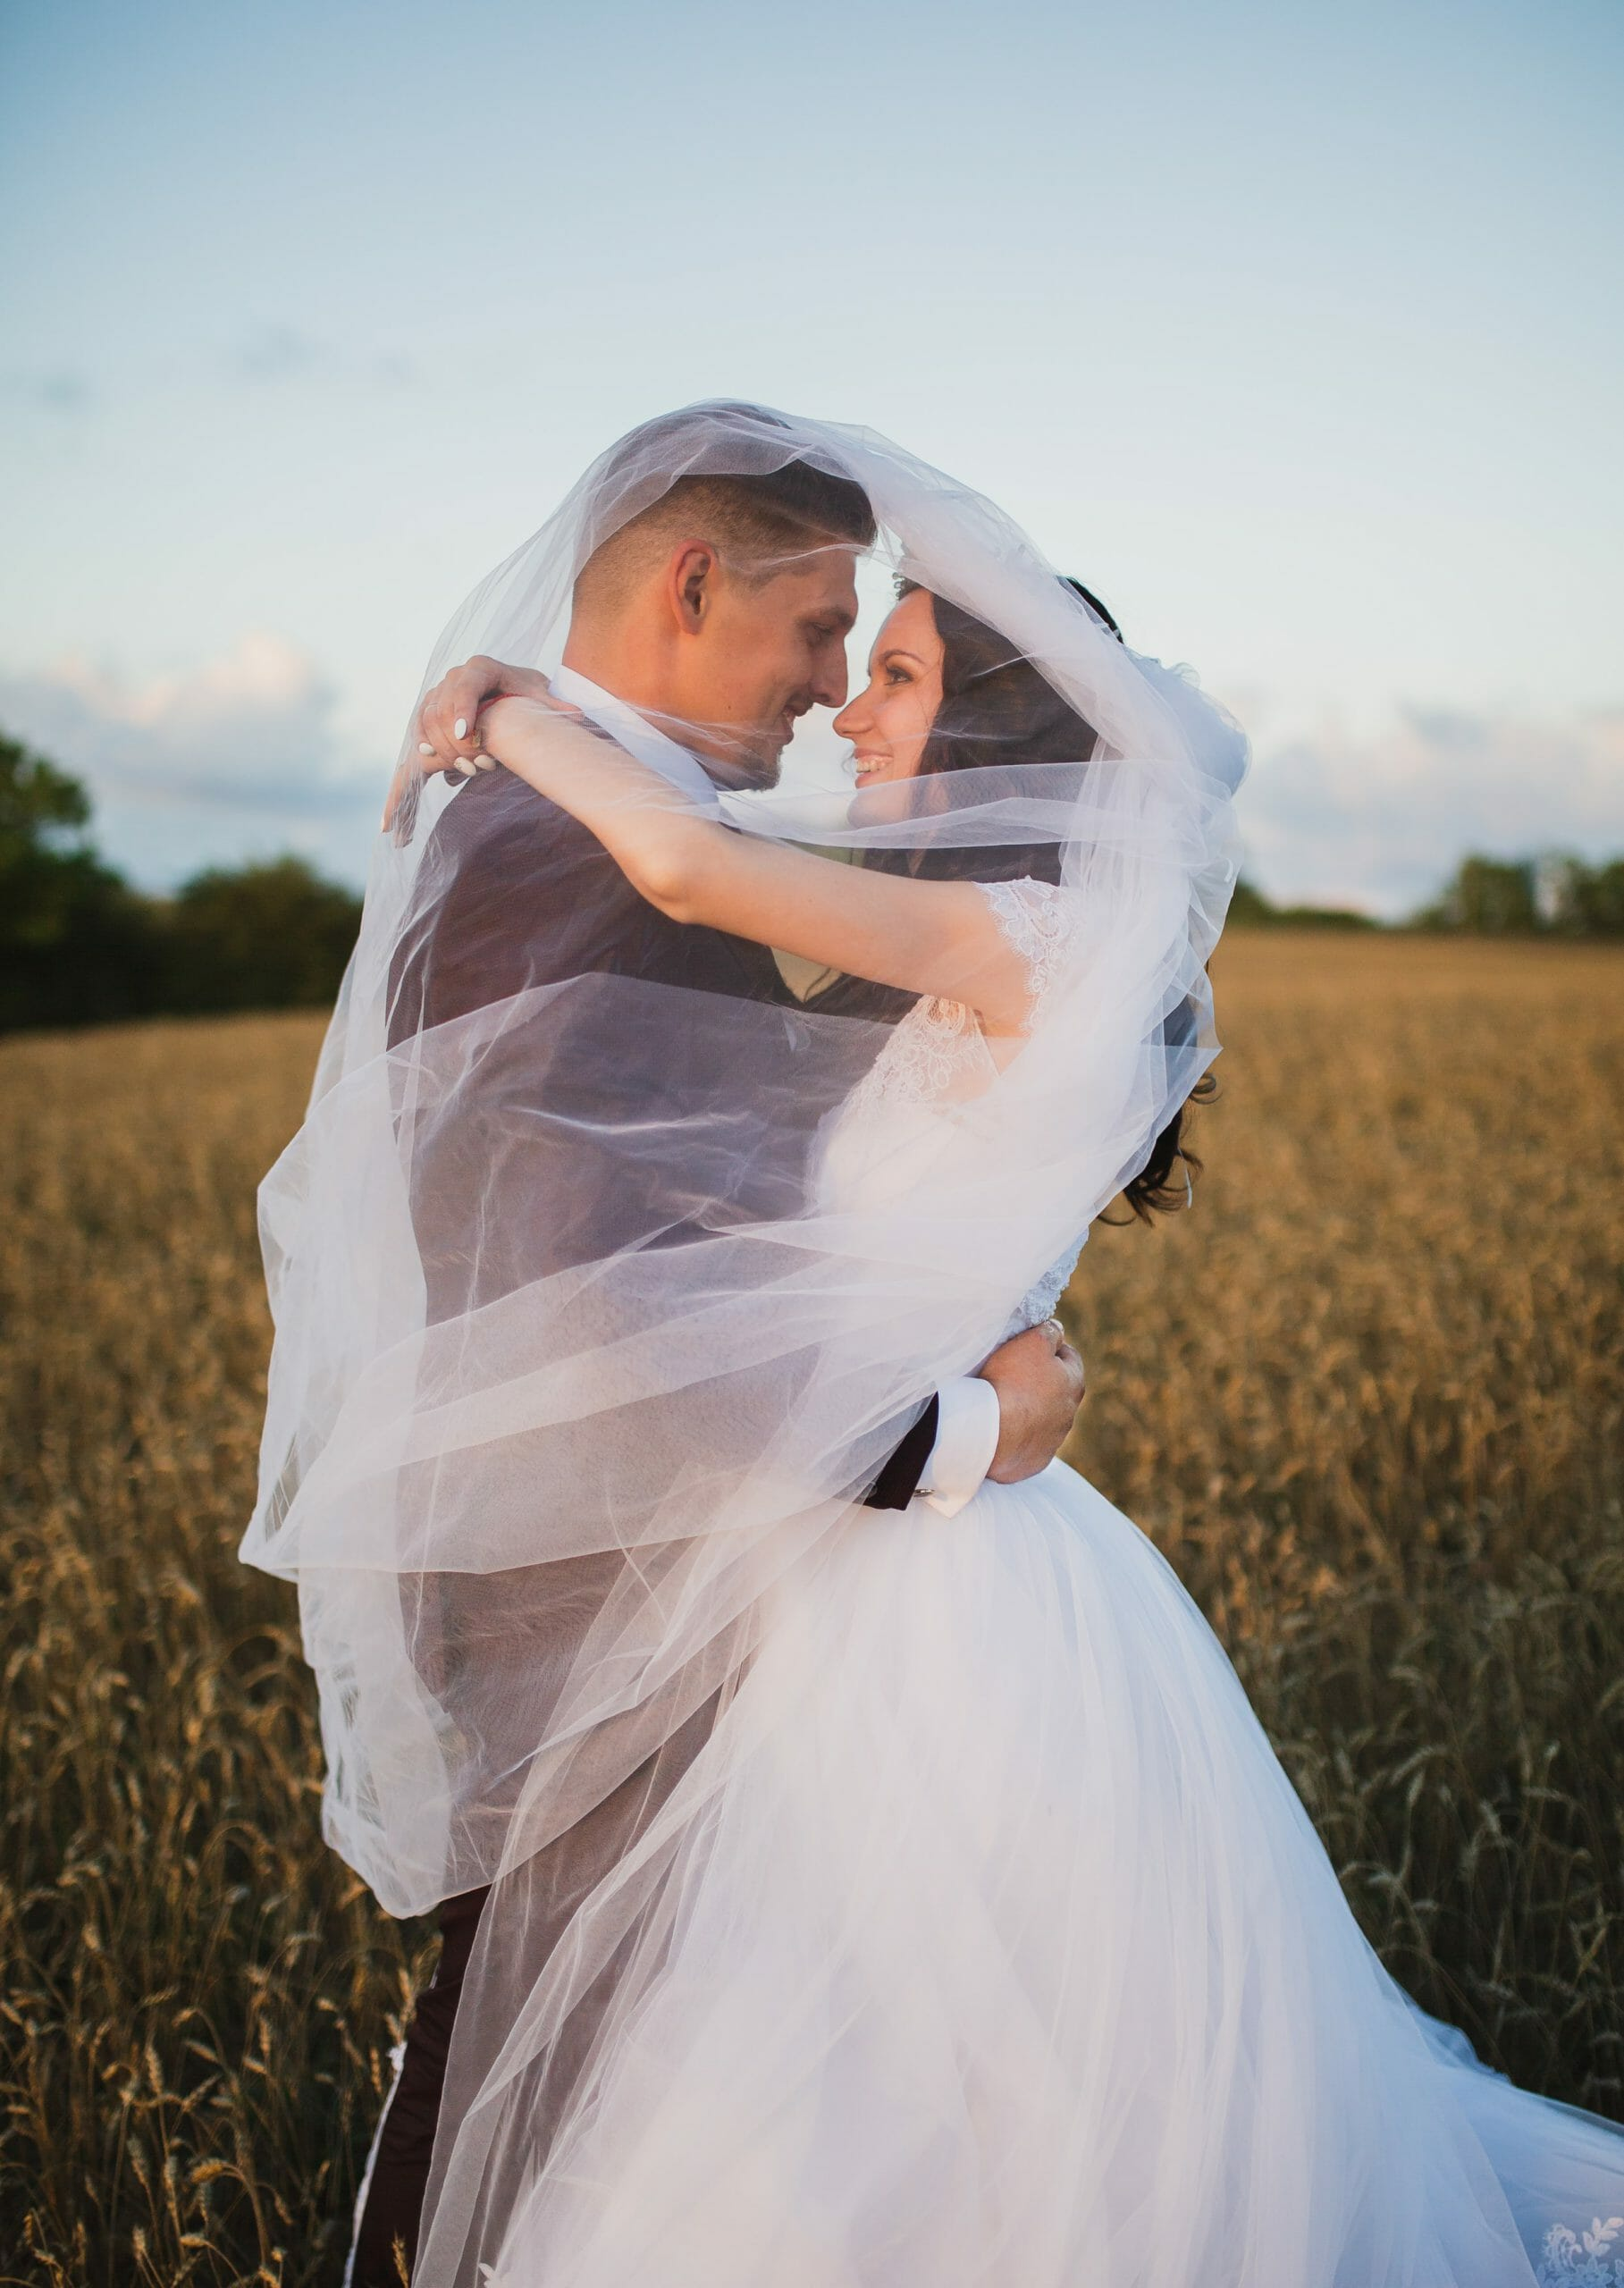 Top tips for coping with a postponed or cancelled wedding